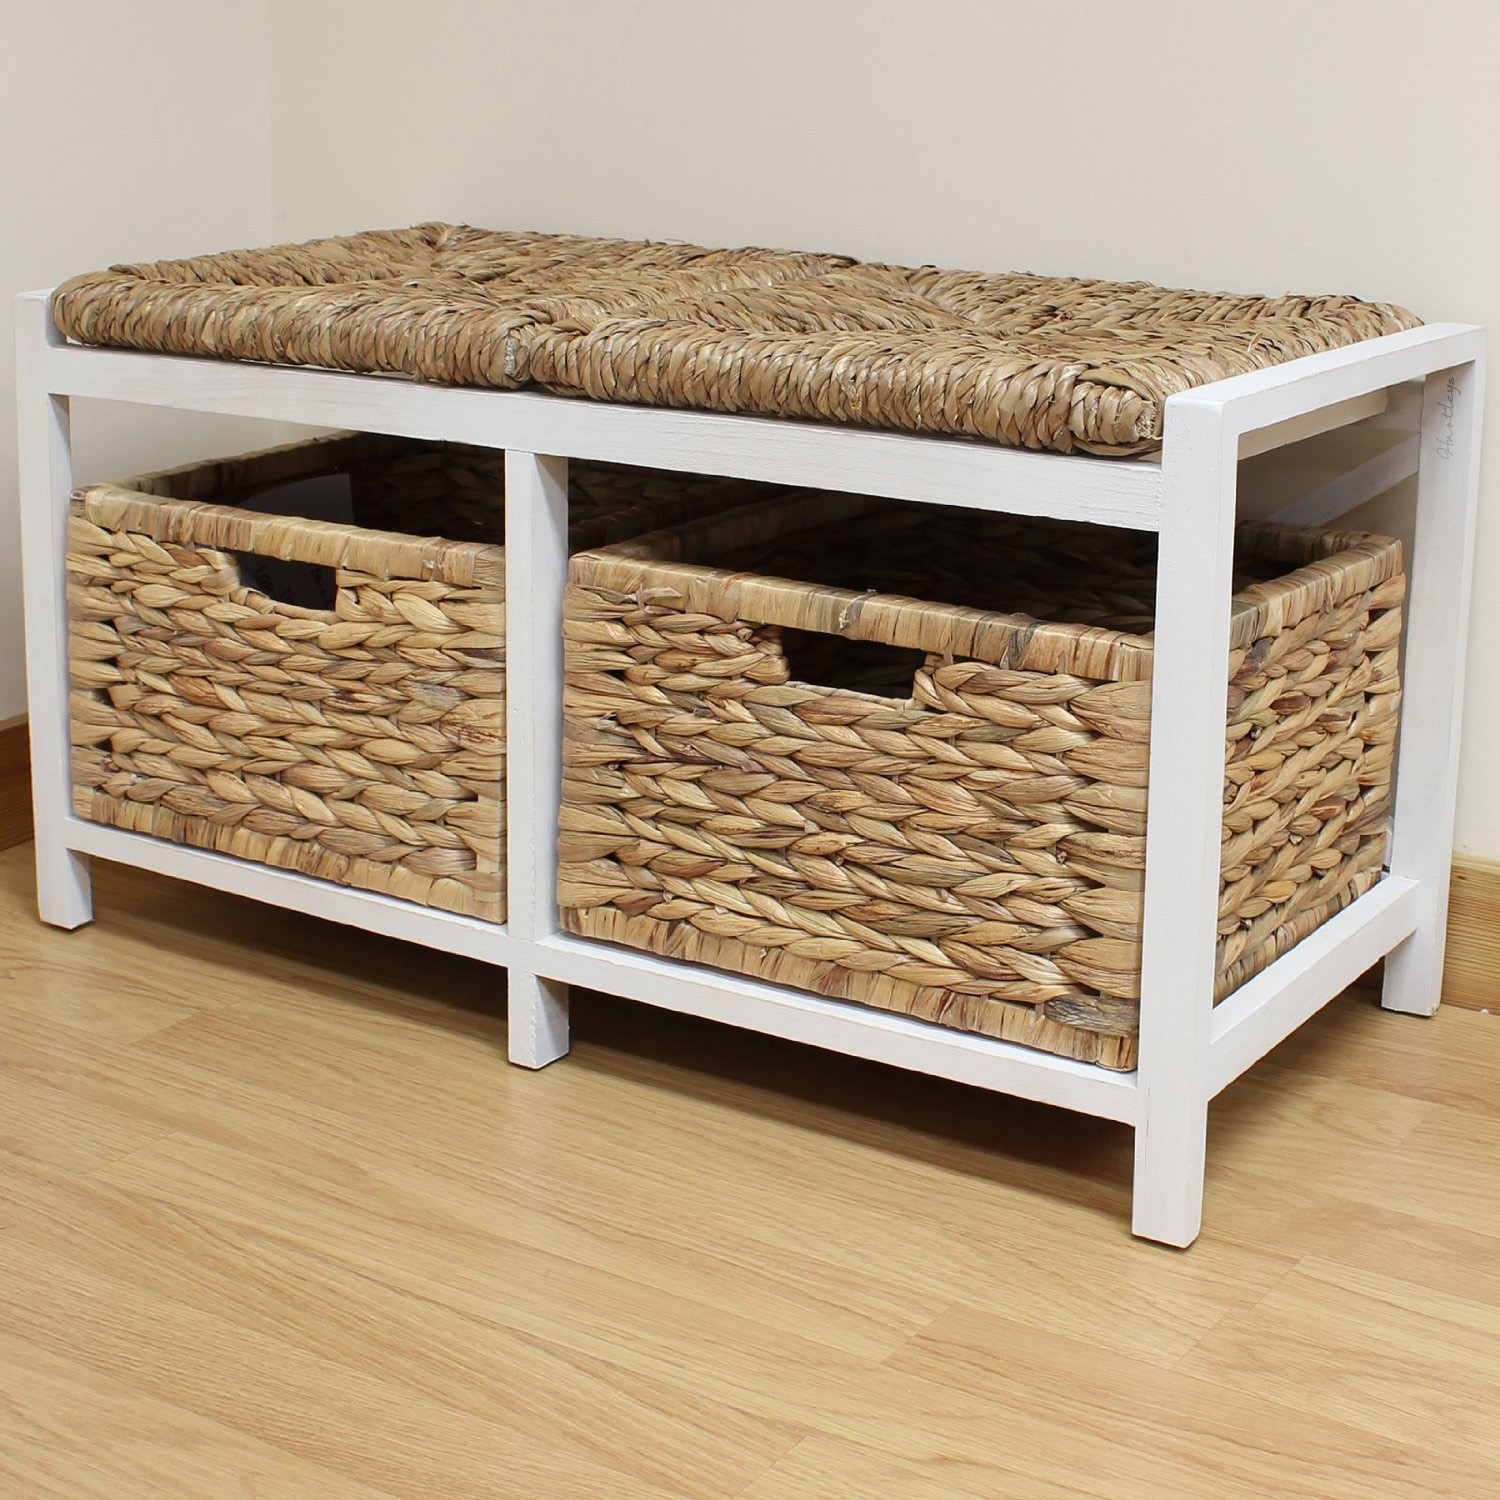 Hartleys farmhouse bench seat storage baskets hallway bathroom wicker cushion ebay Bench with baskets